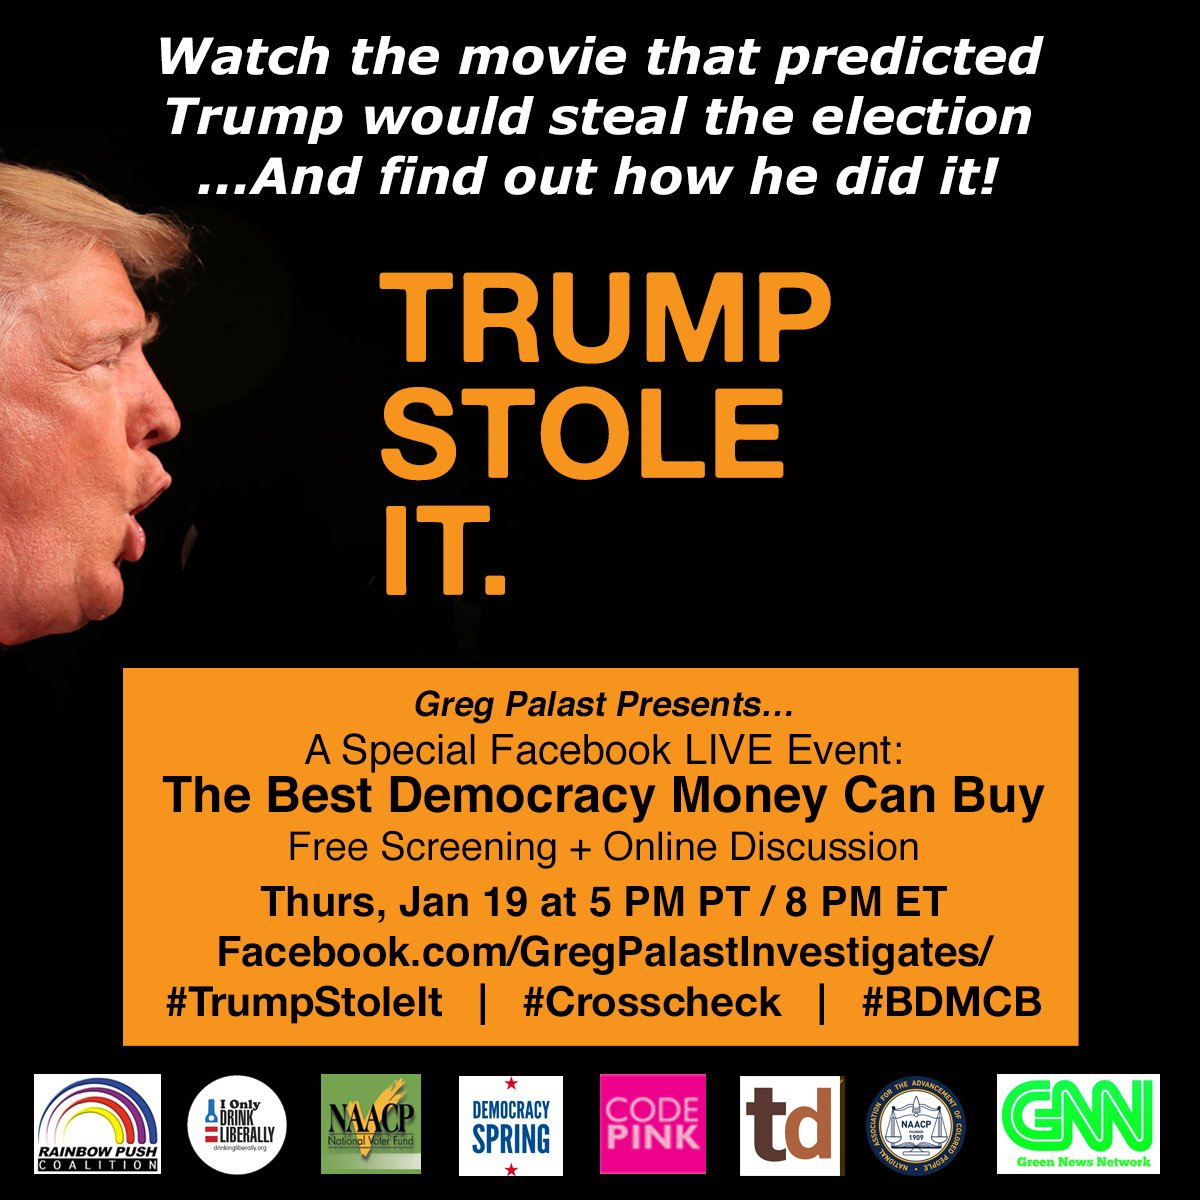 #TrumpStoleIt: A Facebook LIVE Event — 5PM PT / 8PM ET on #Inauguration  Eve  https://www. facebook.com/GregPalastInve stigates/photos/a.430516172127.205520.87777747127/10154931154507128/?type=3&amp;theater &nbsp; …  #Trump #ElectionFraud #TheResistance<br>http://pic.twitter.com/suiskZKCzo